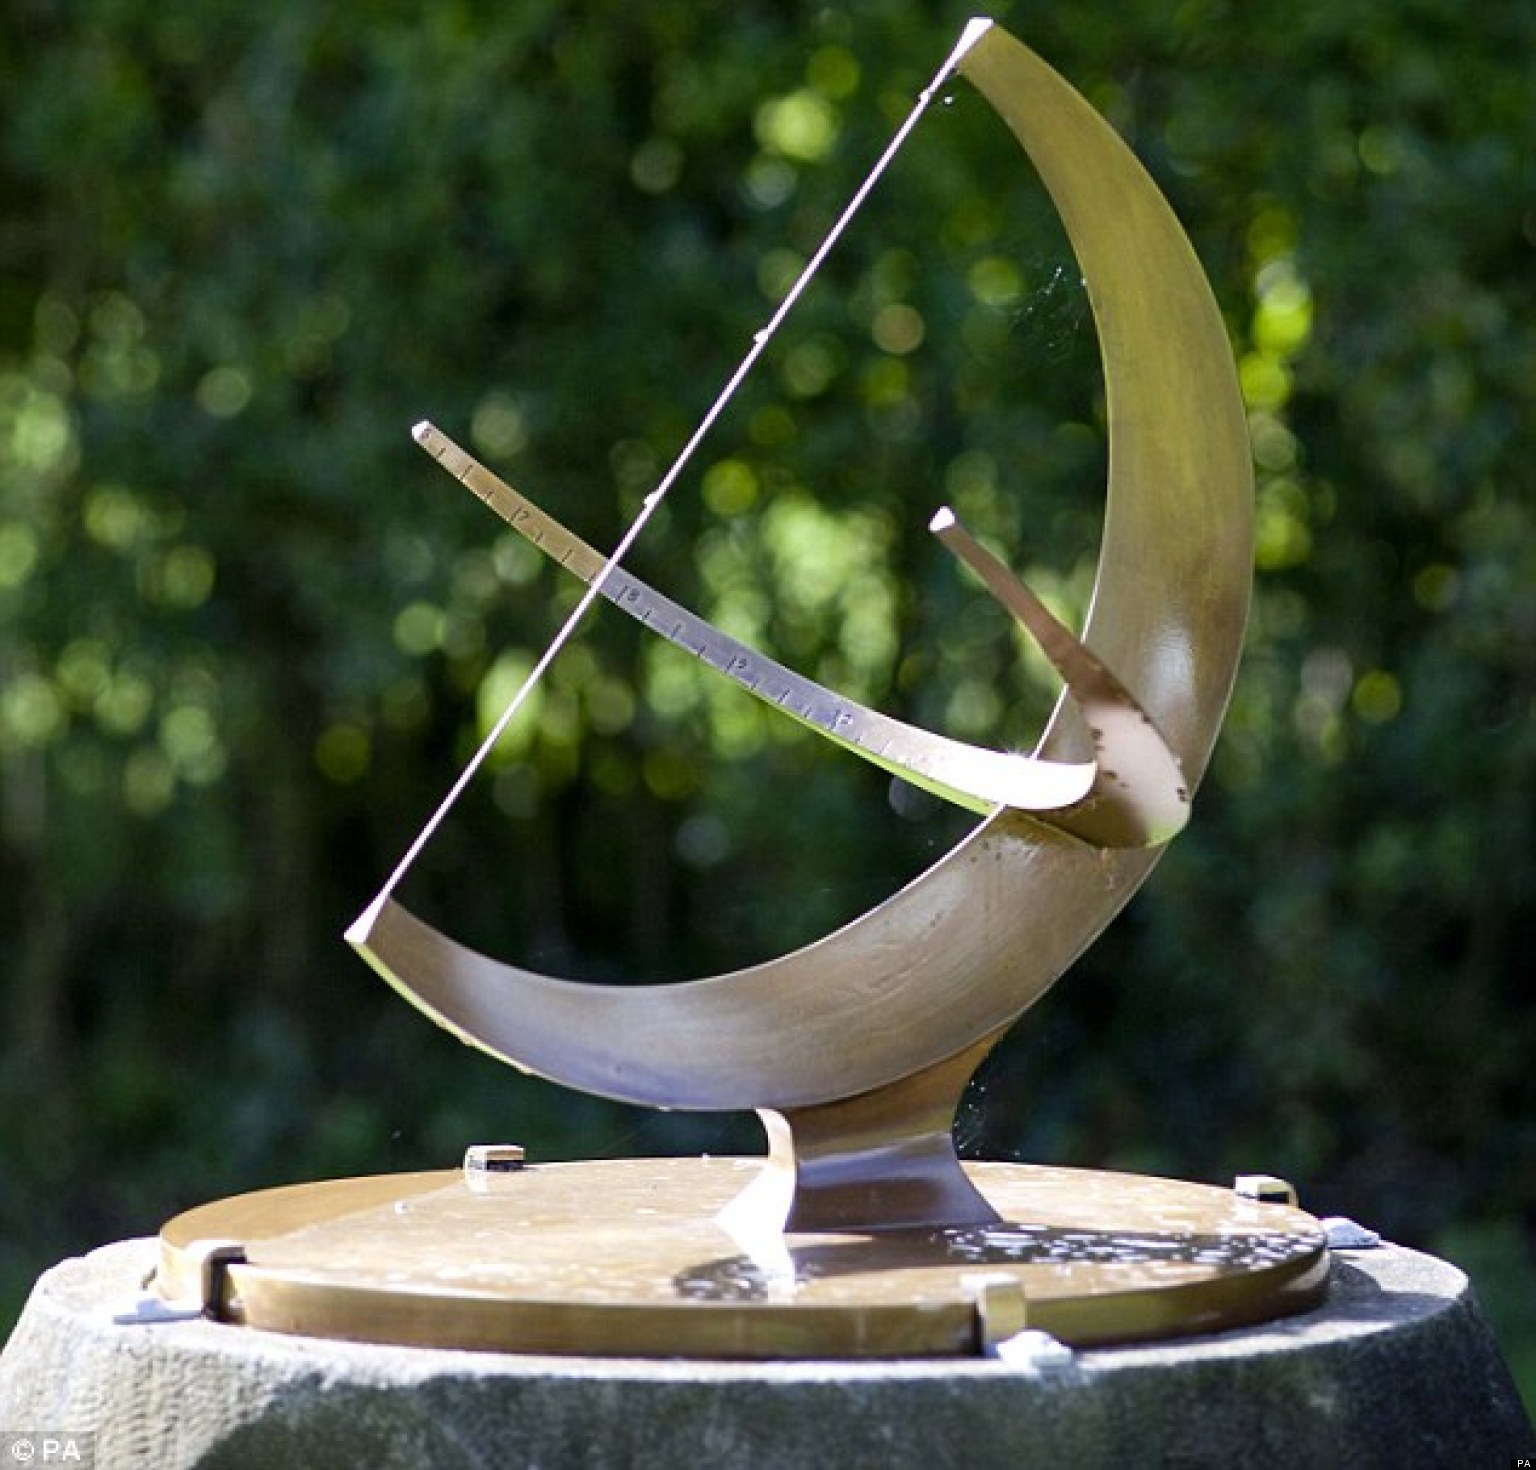 Men Who Stole 500k Henry Moore Sculpture The Sundial To